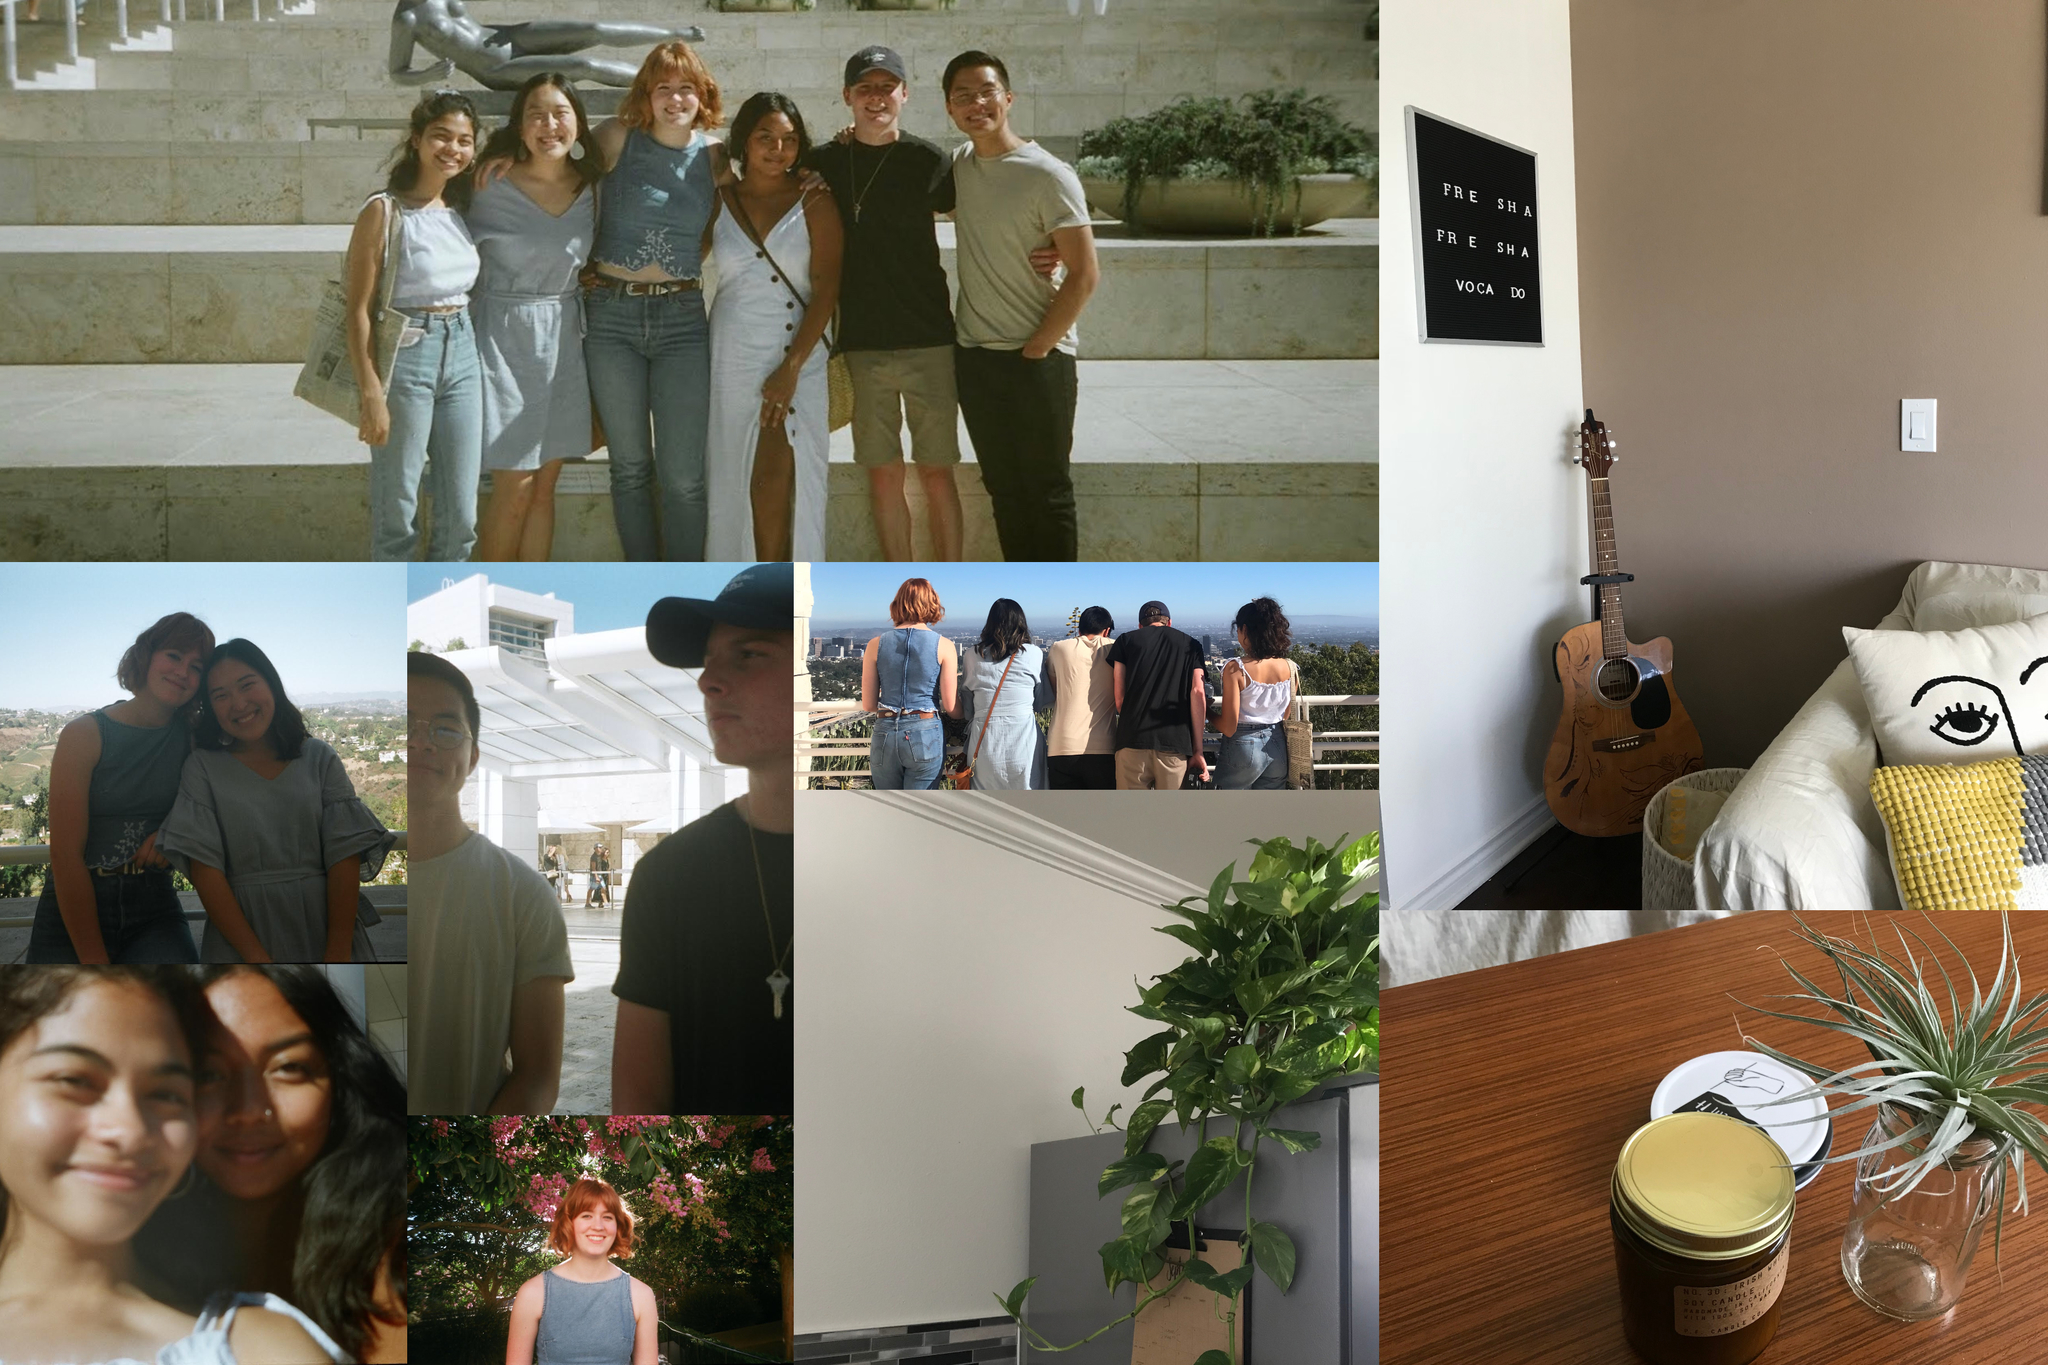 Aubrey and Best Friends and Apartment Collage